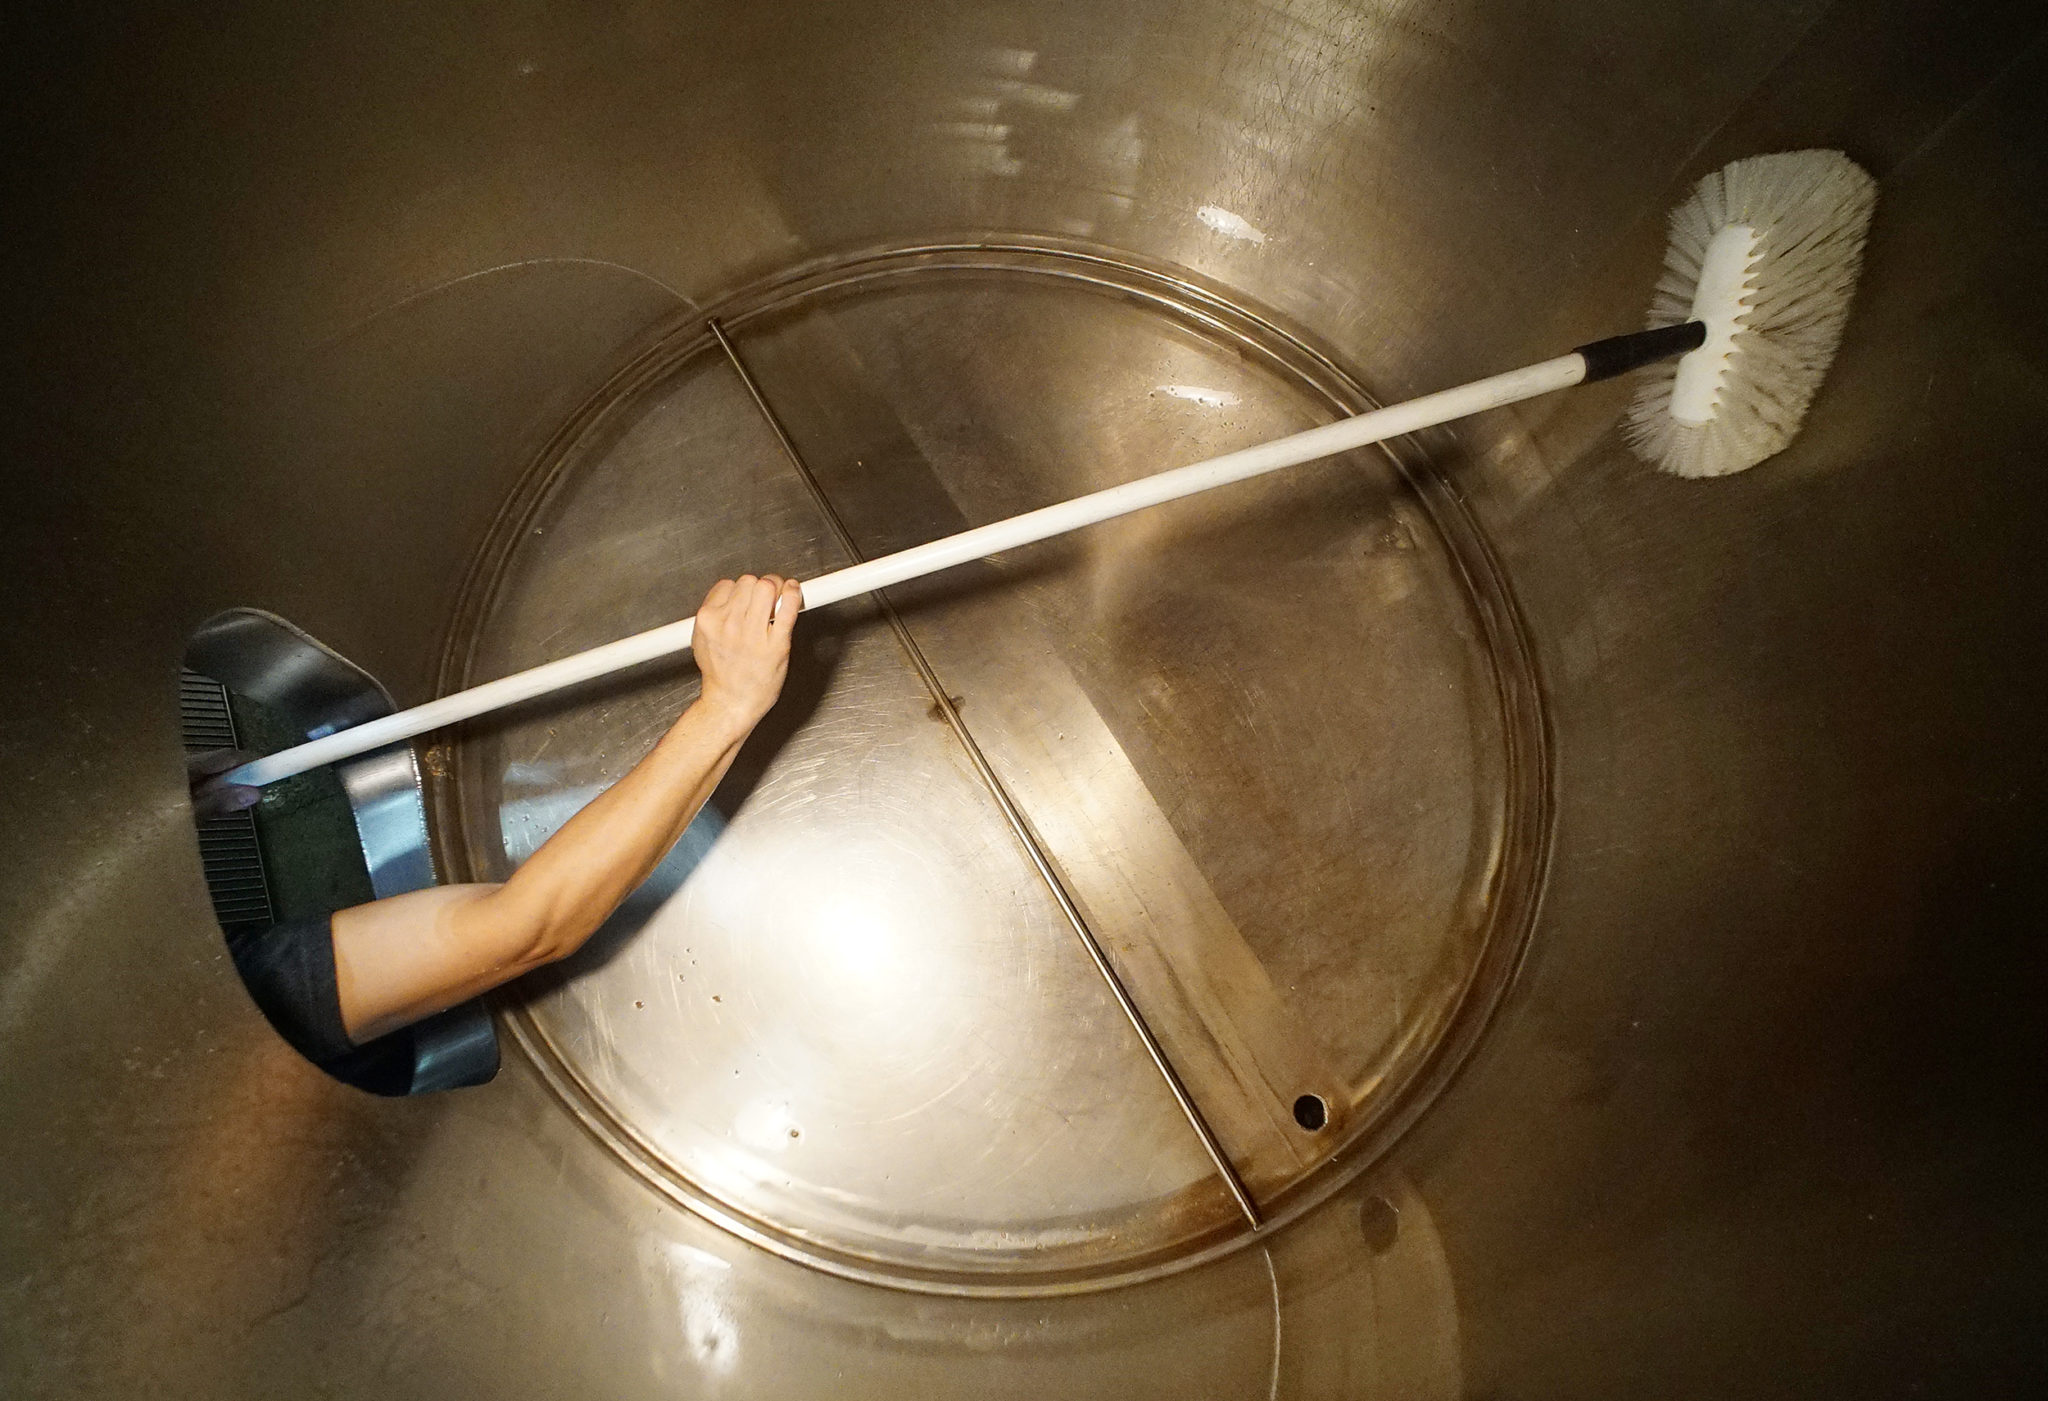 <p>Caldwell uses a long brush to clean the mash tun vessel. Sanitation and cleaning occupies the majority of the brewers&#8217; time.</p>